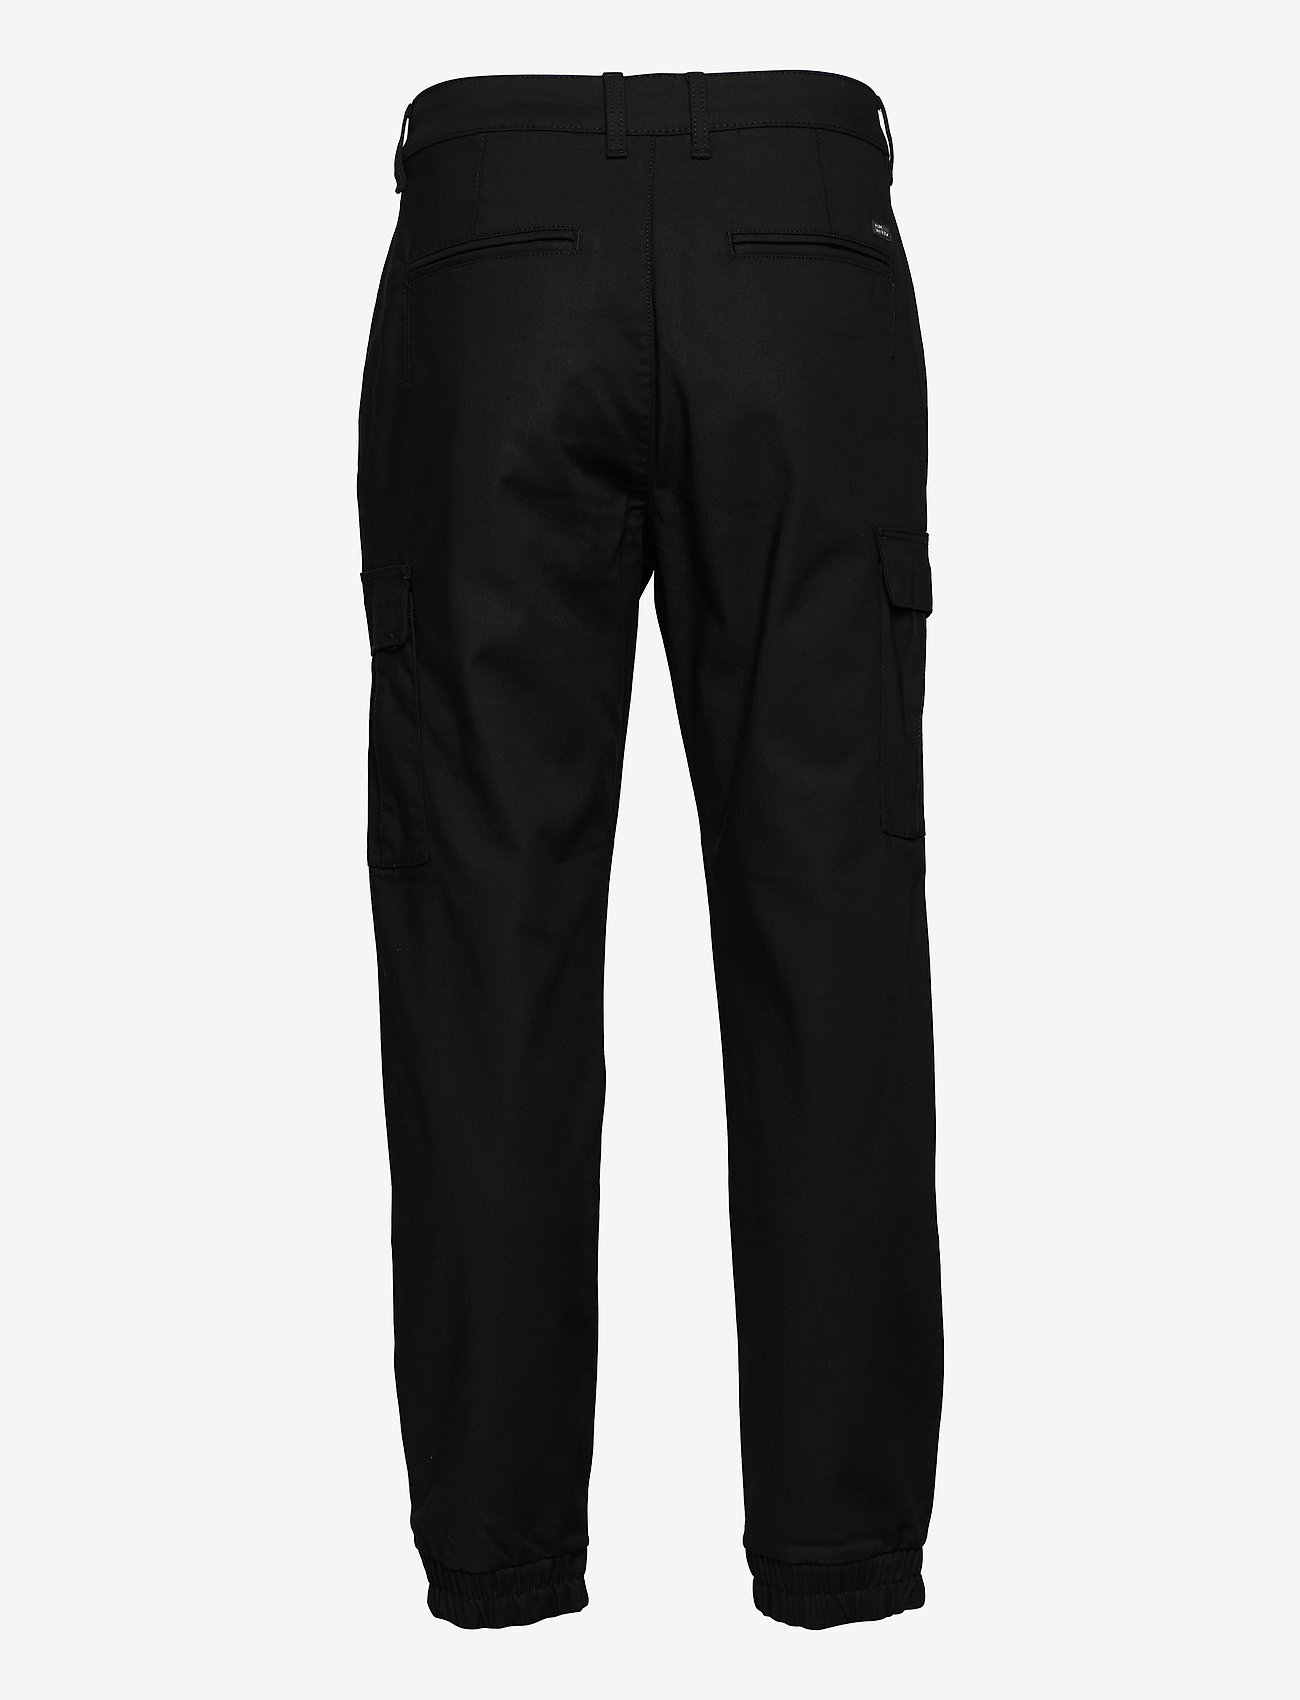 Blend - Pants - chino's - black - 1